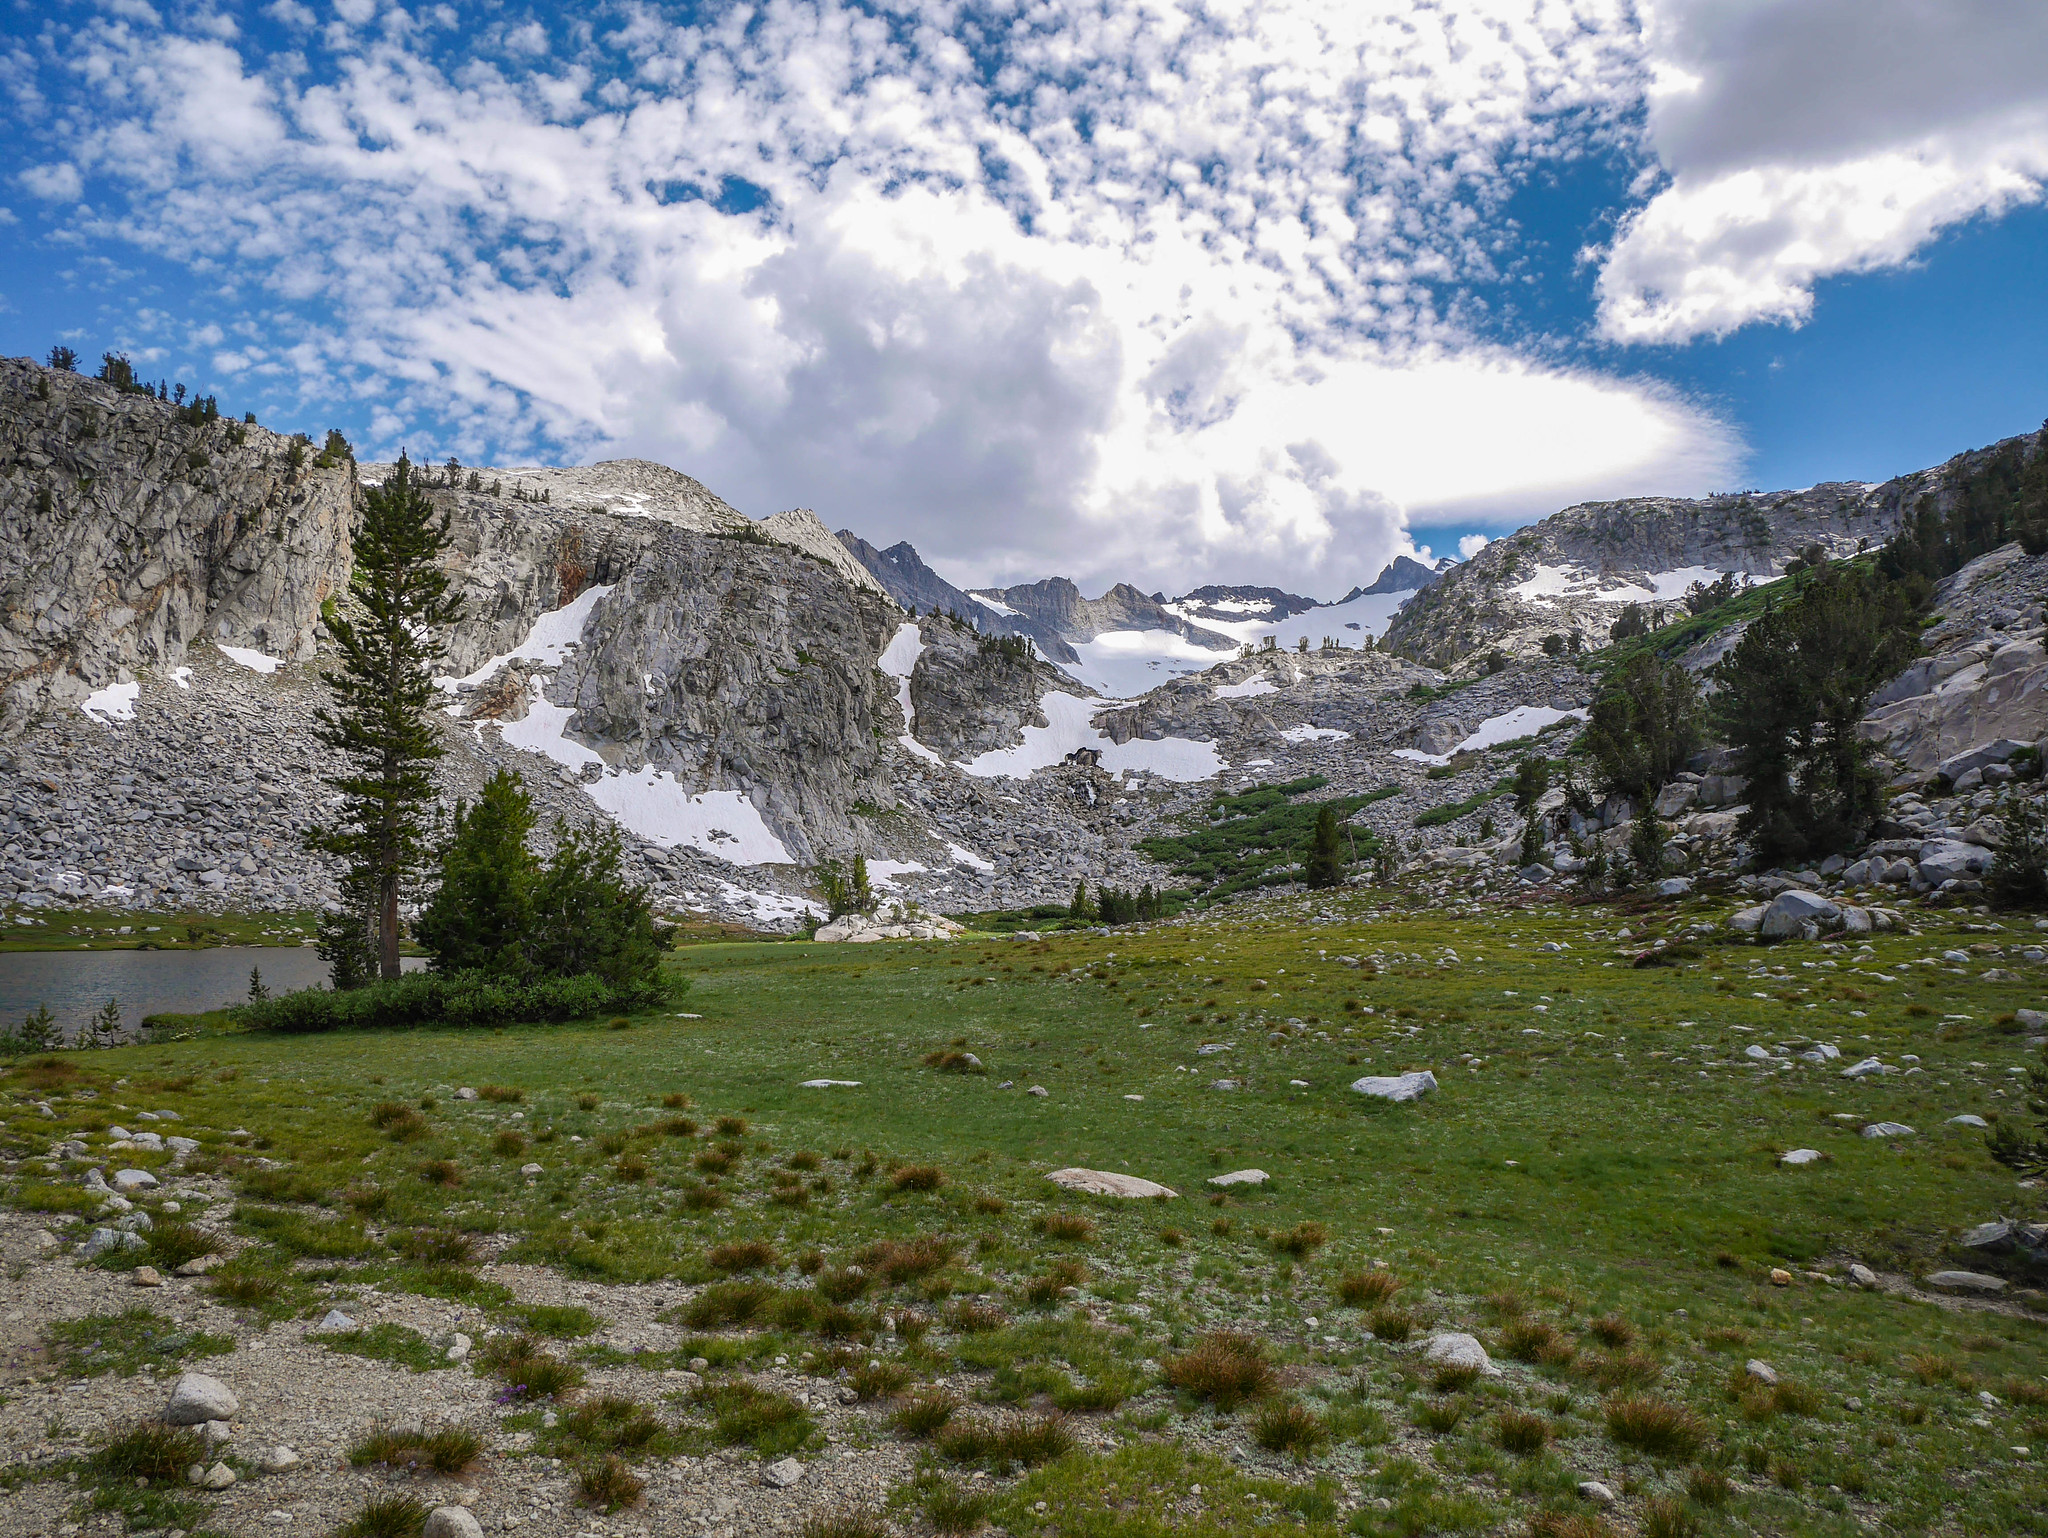 JMT north of Donahue Pass